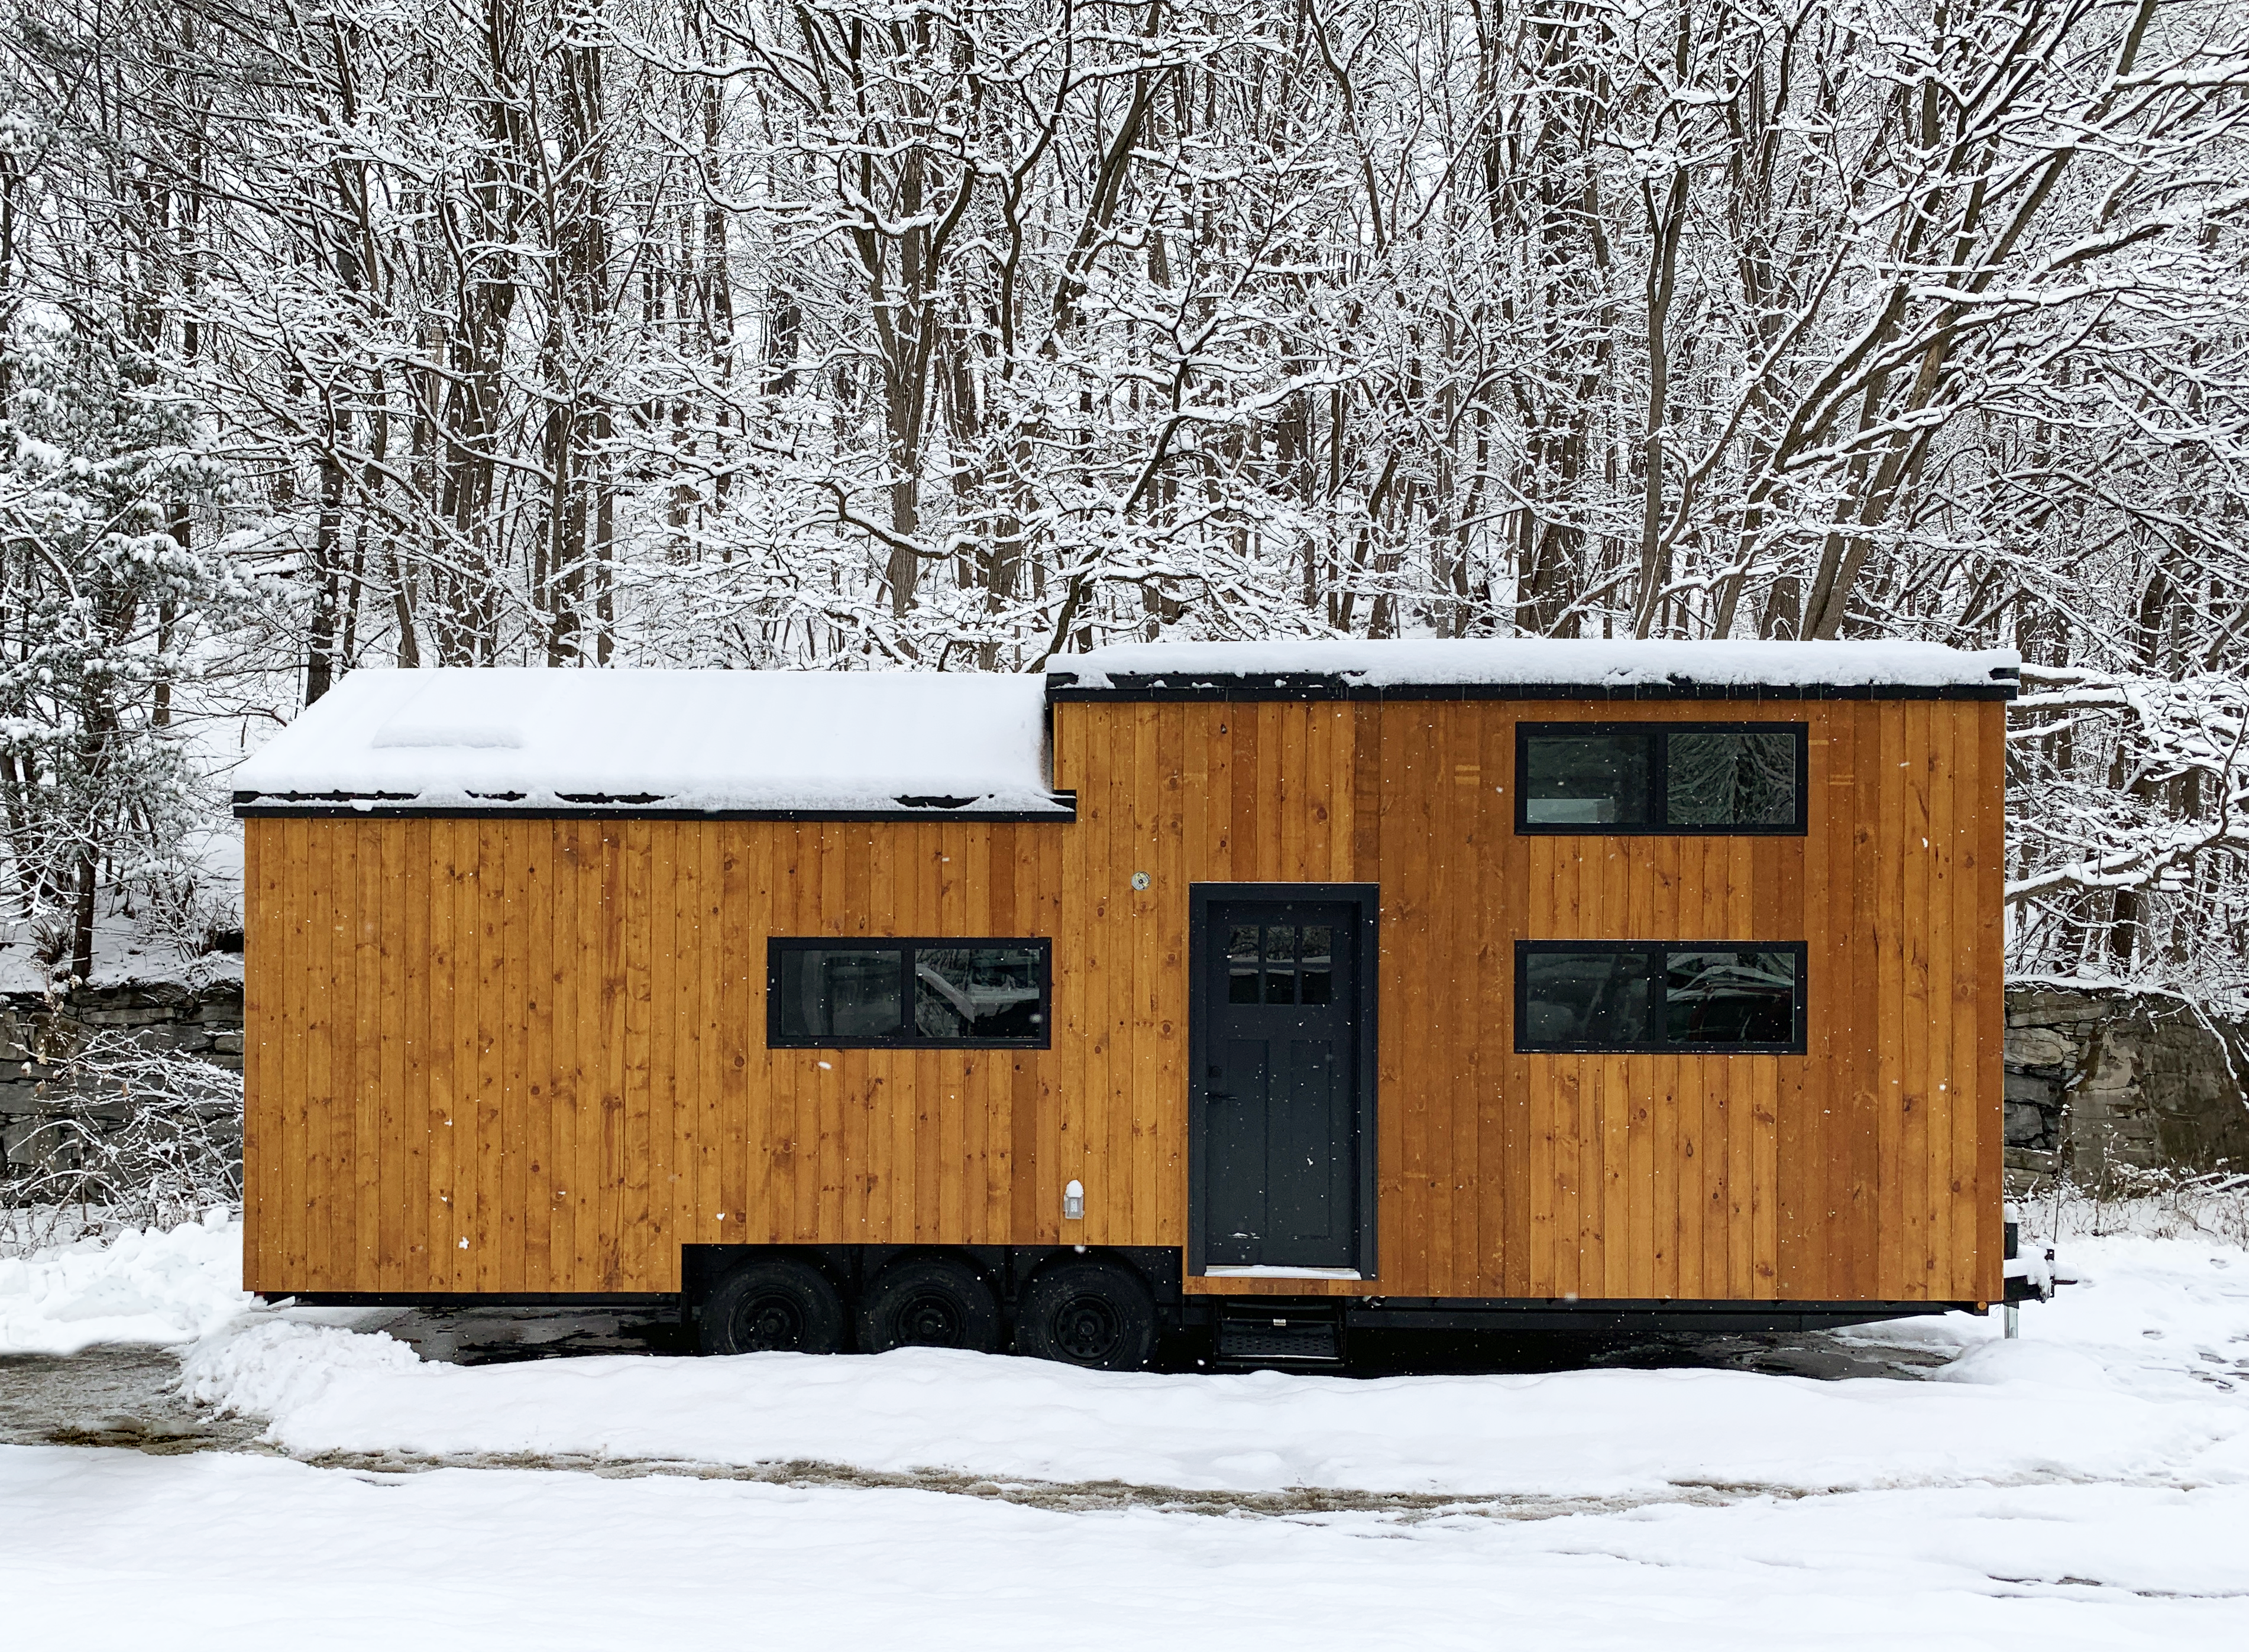 kinderhook tiny house in snow park model